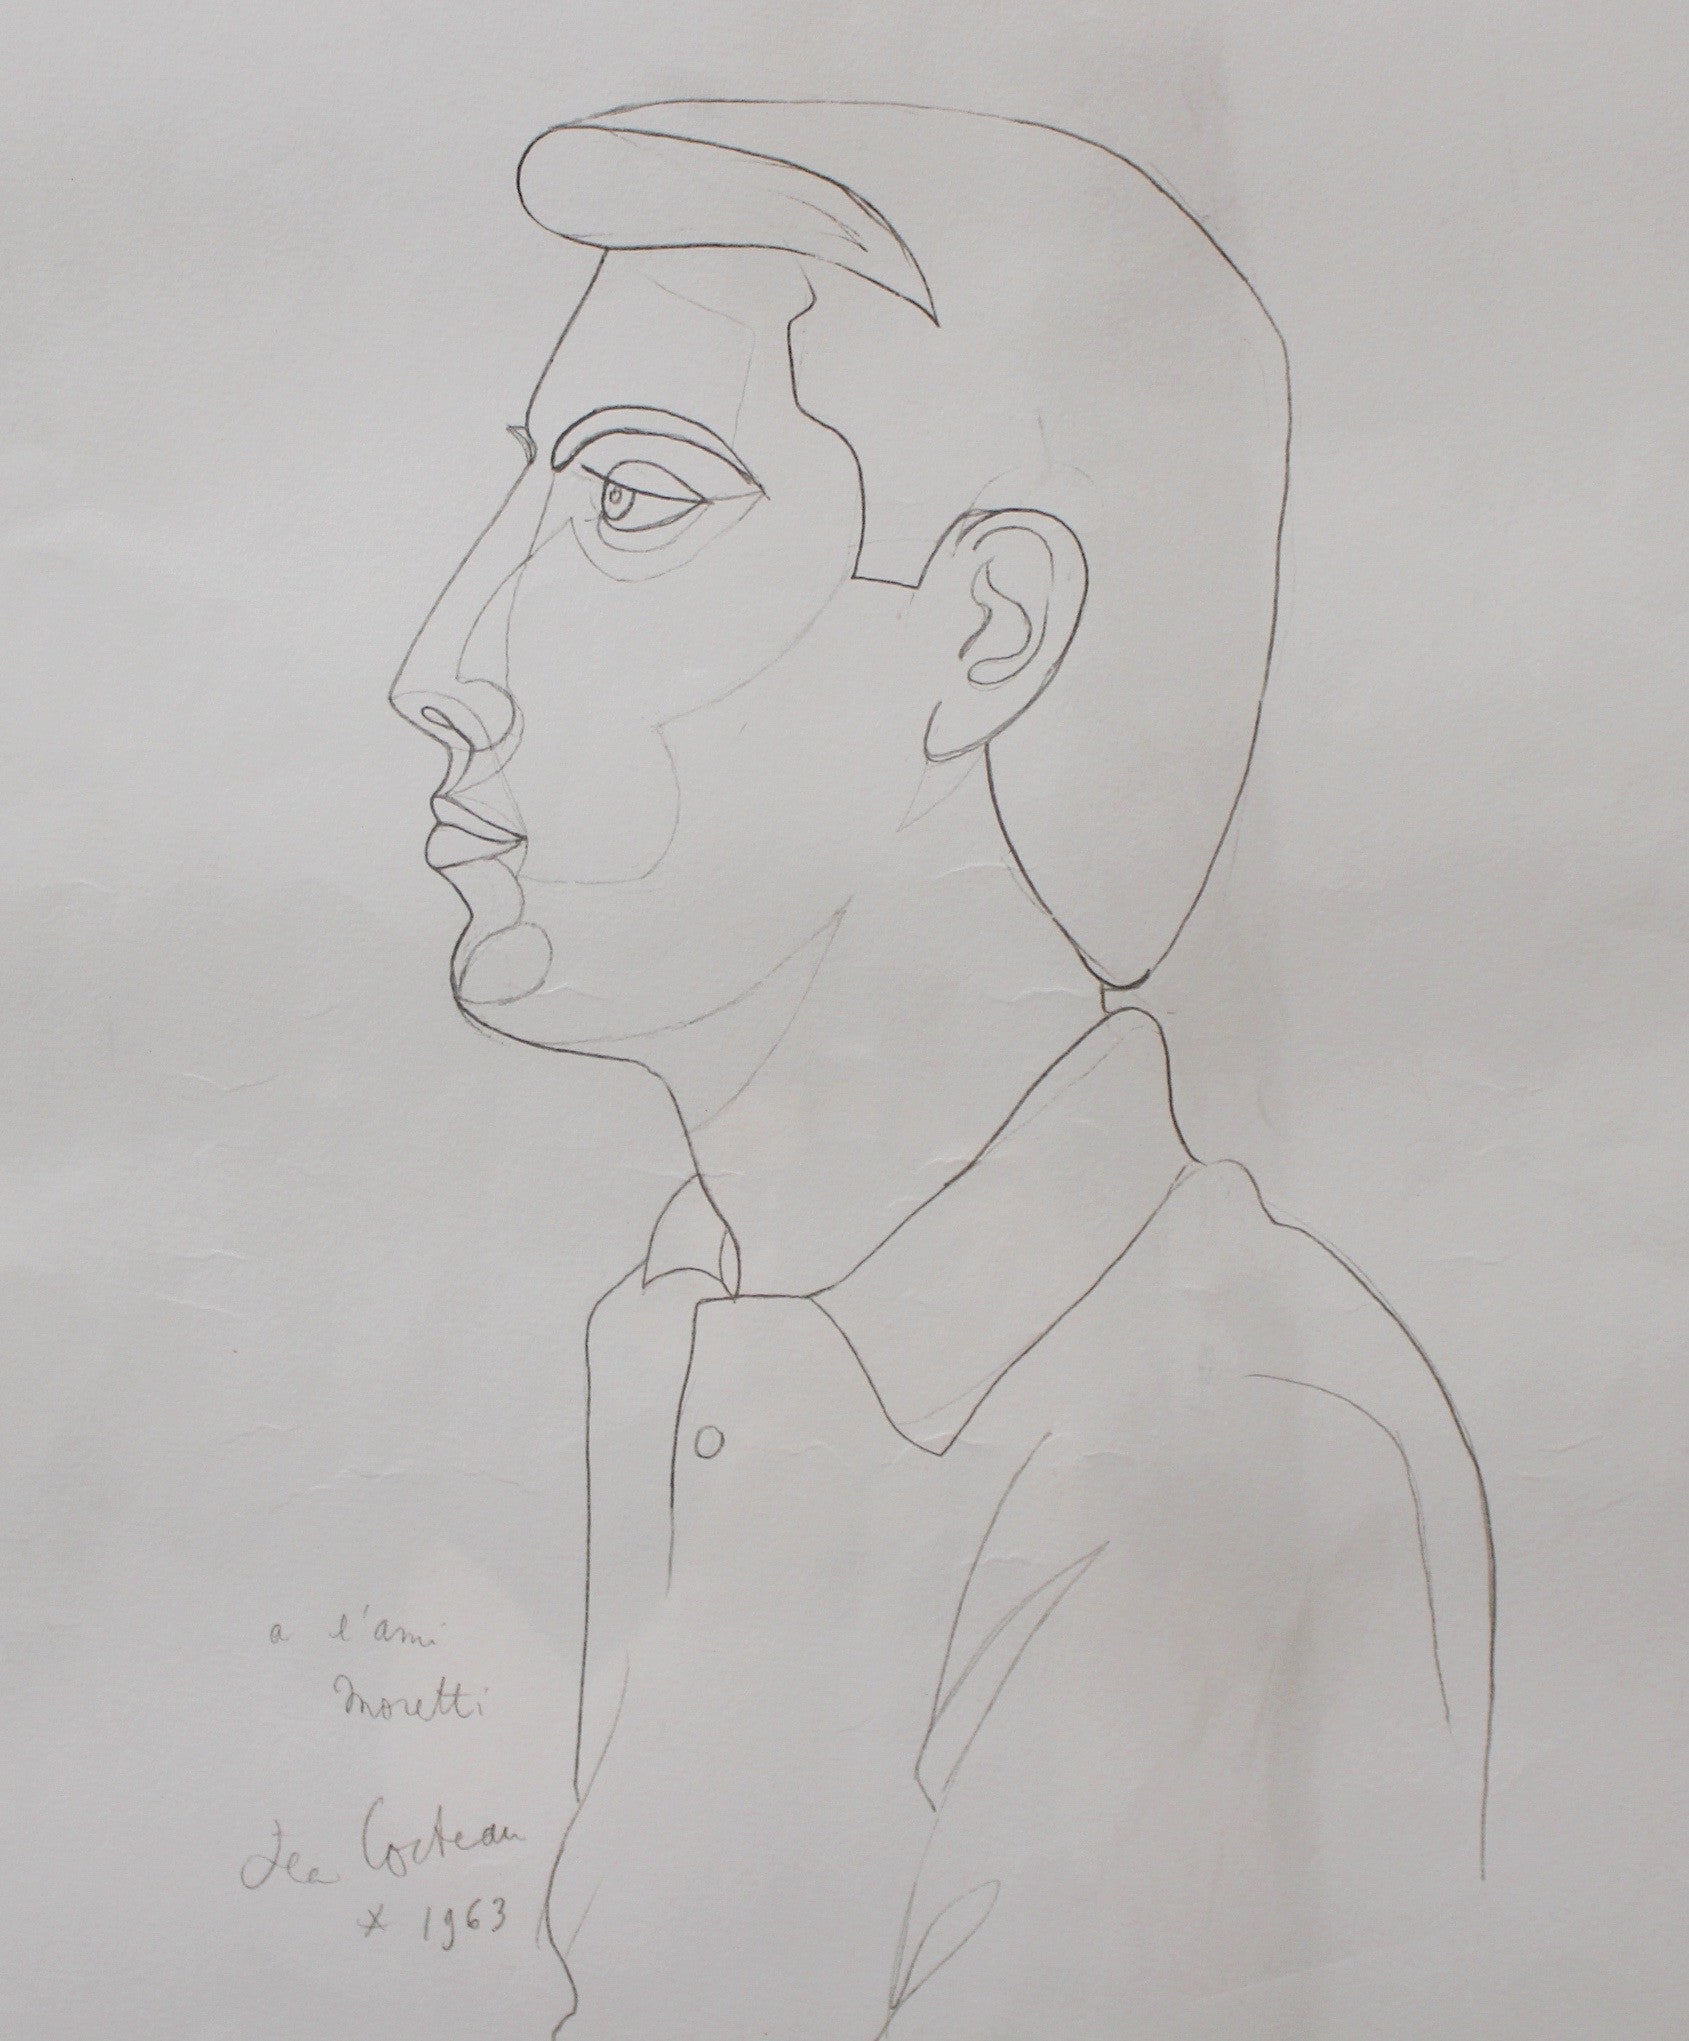 Lithograph of the Portrait of Raymond Moretti by Jean Cocteau (1963)